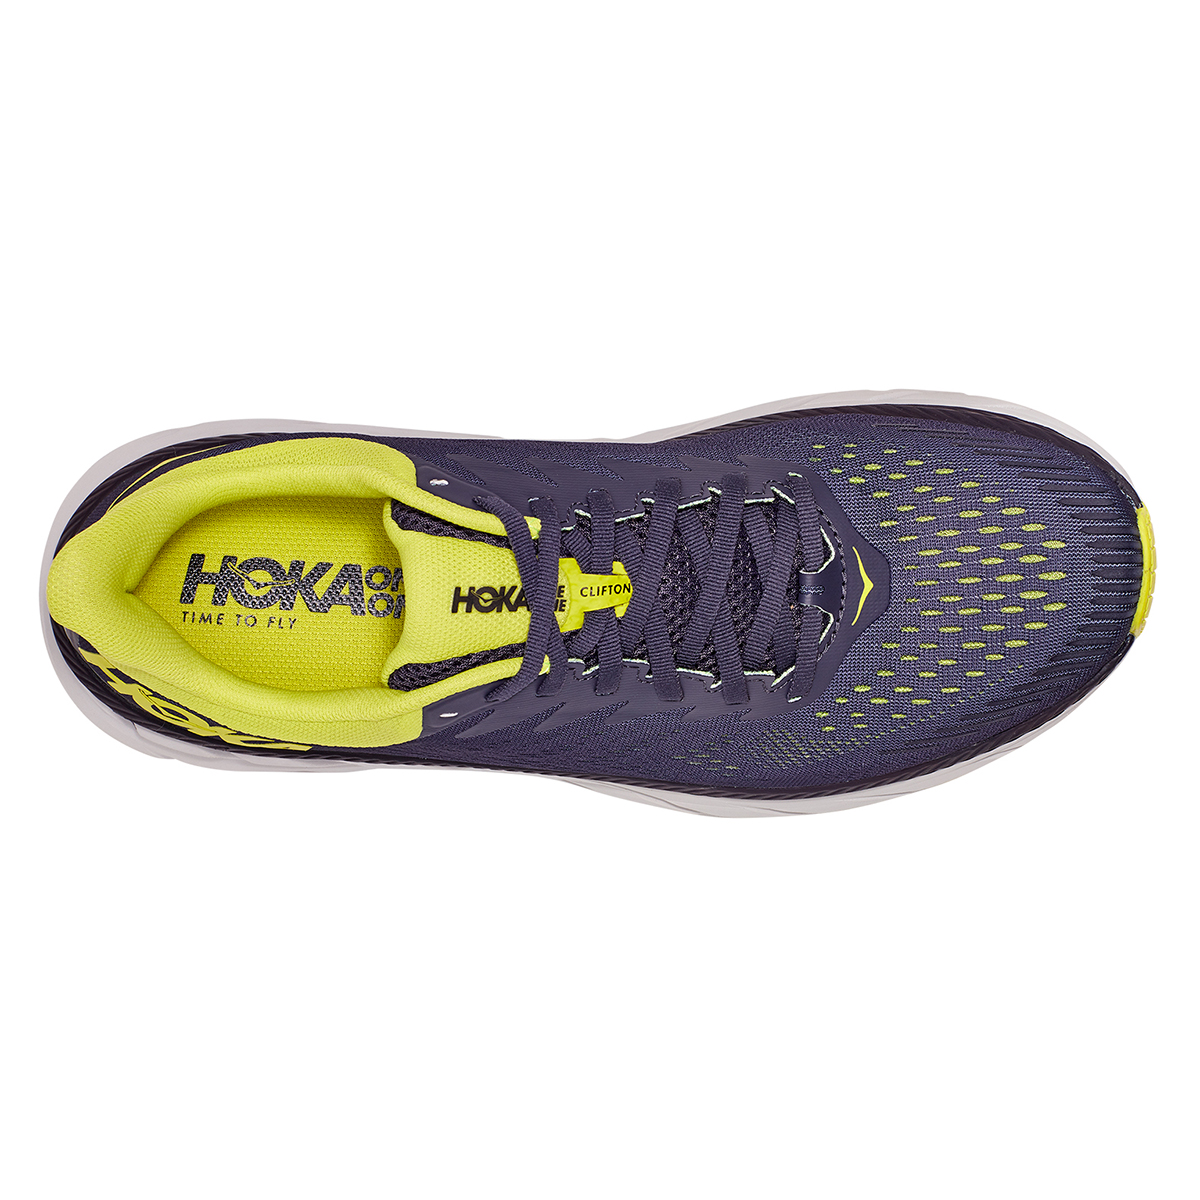 Men's Hoka One One Clifton 7 Running Shoe - Color: Odyssey Grey/Evening Primrose - Size: 7 - Width: Regular, Odyssey Grey/Evening Primrose, large, image 2